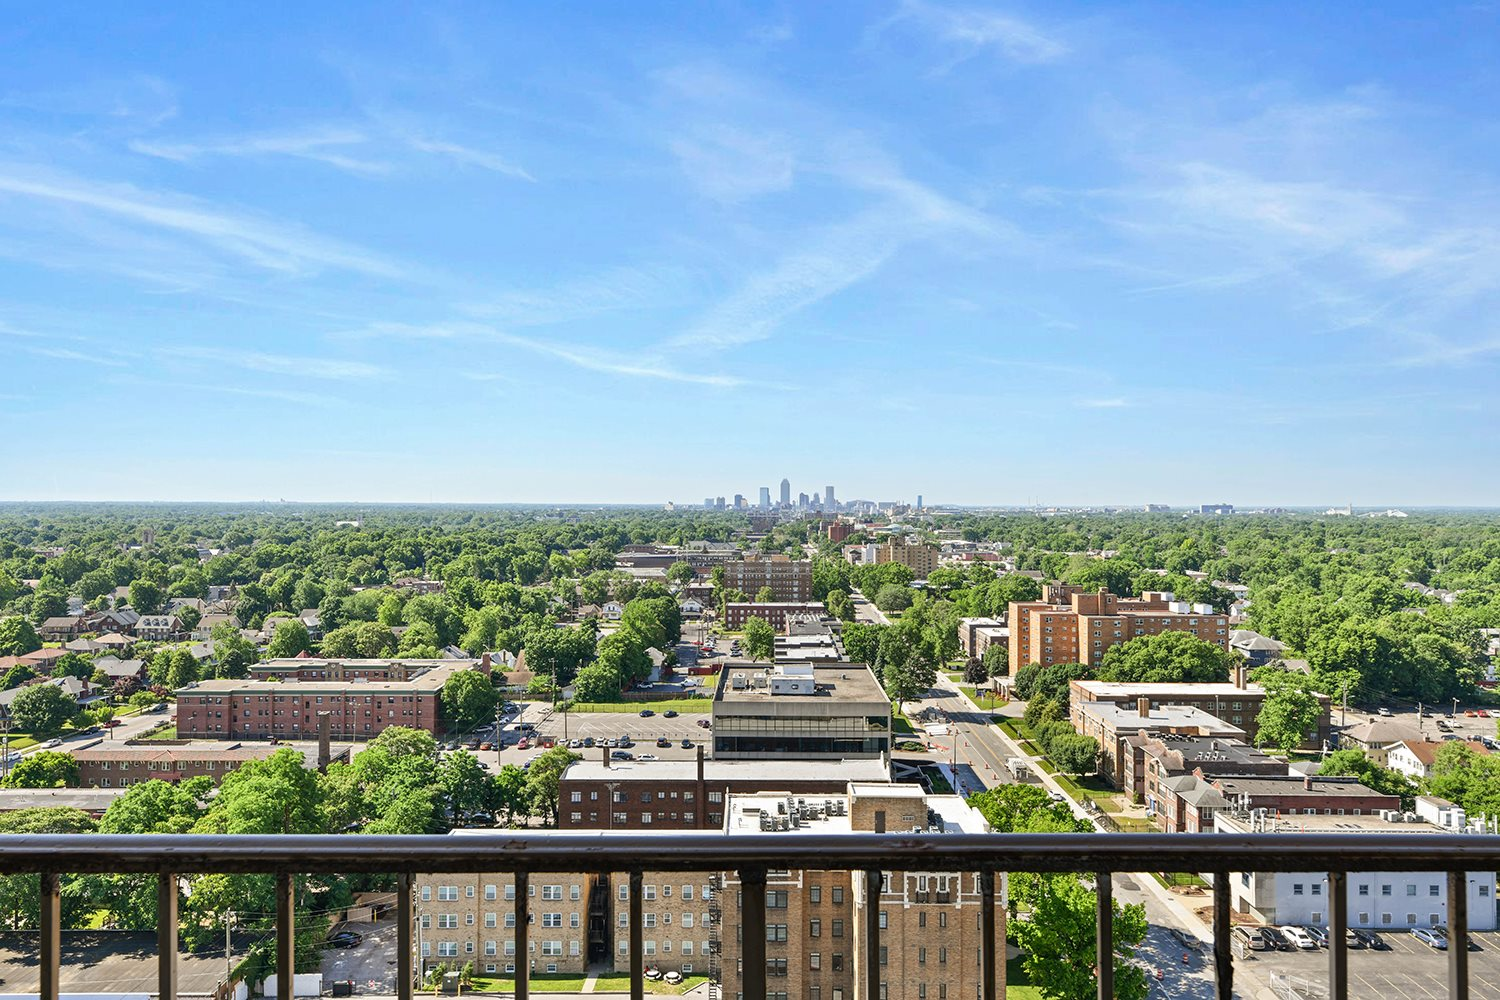 Picturesque Views From Apartment Balcony at CityView on Meridian, Indiana, 46208